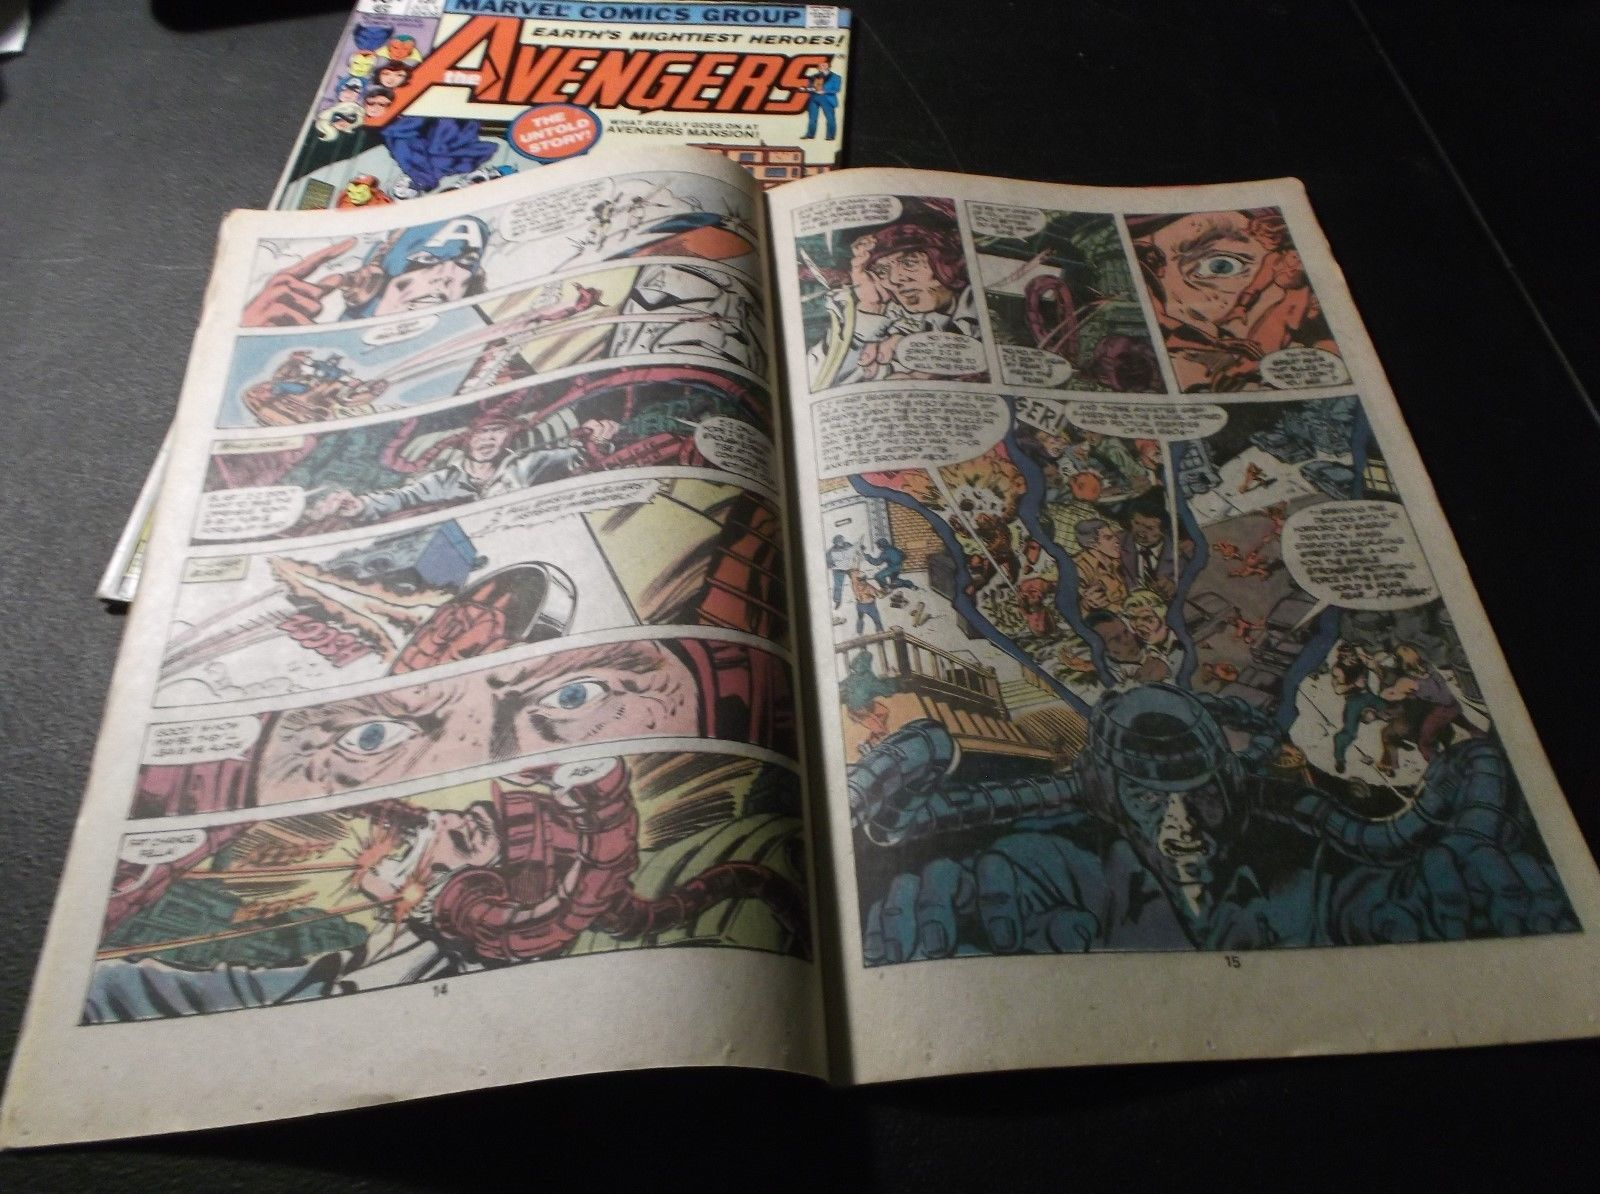 AVENGERS Issues 197 & 198 * Beast Gets Drunk, Red Ronin & Ms. Marvel Pregnant!!!